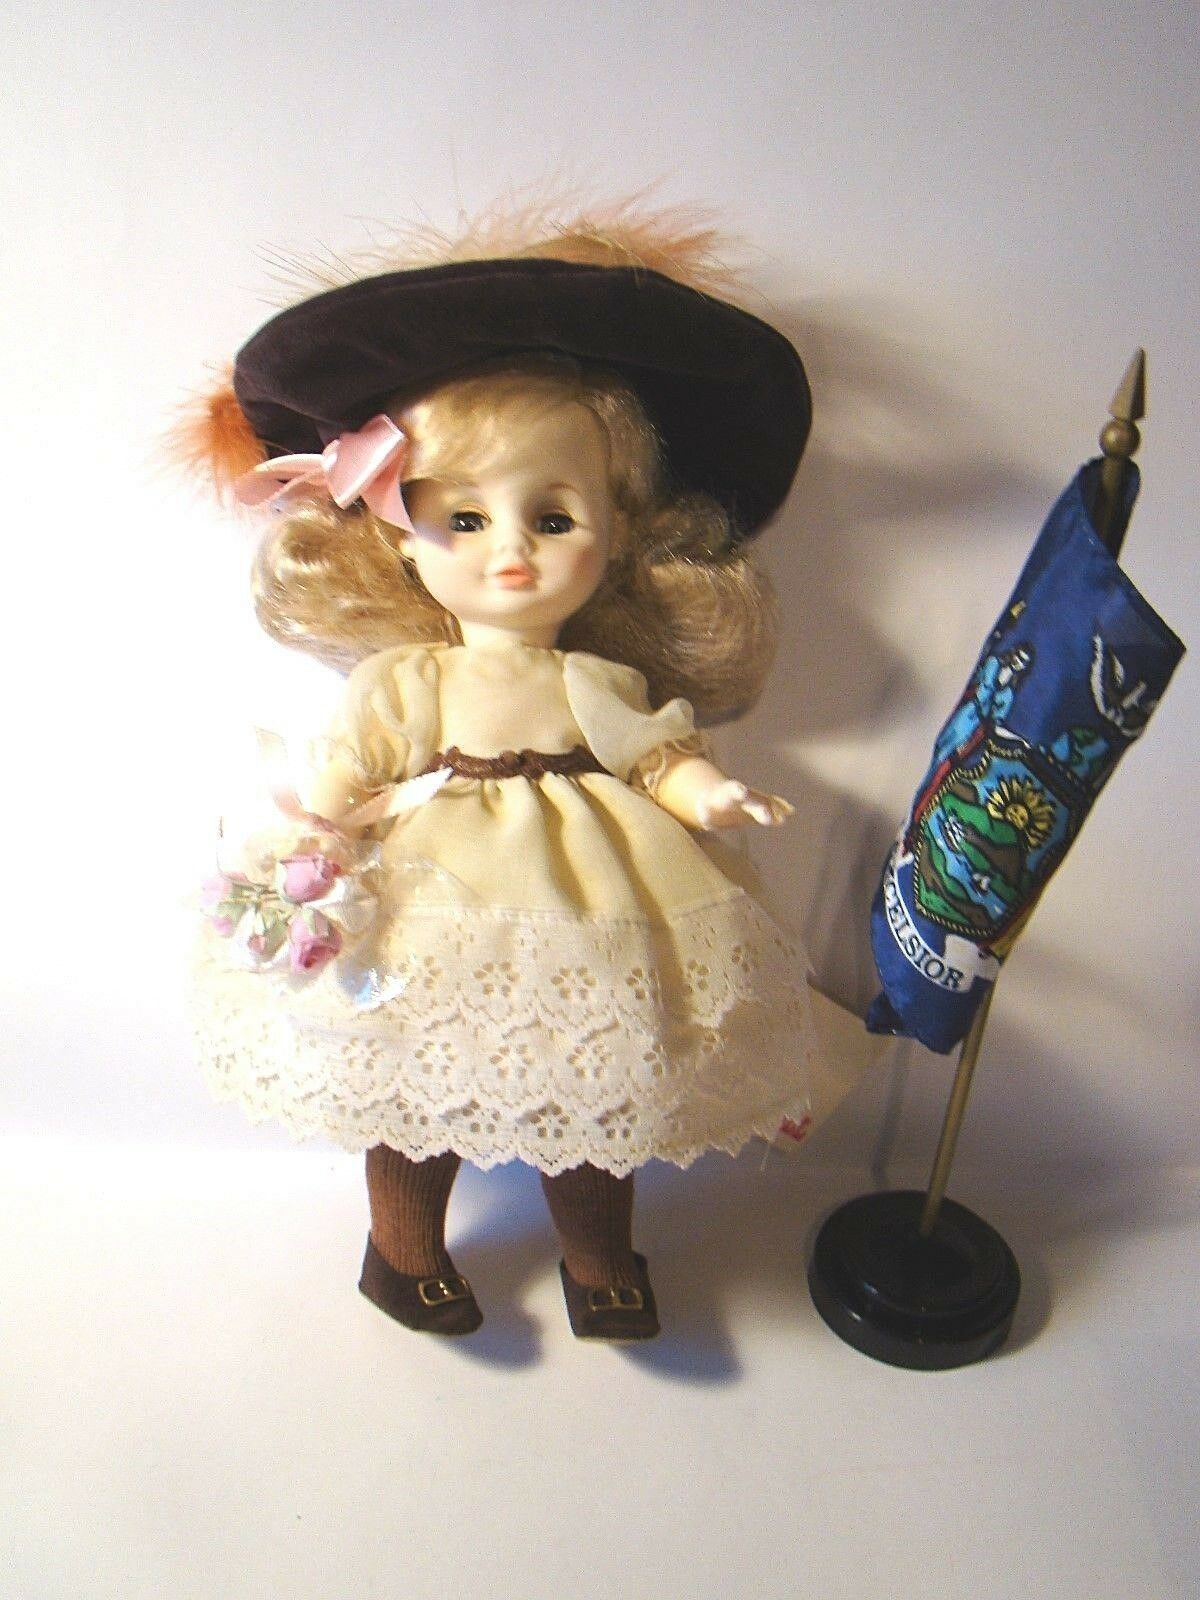 New York 1121 Royal House Dolls Mary Jane Growing Up In The U.S.A. Brooklyn - $12.00